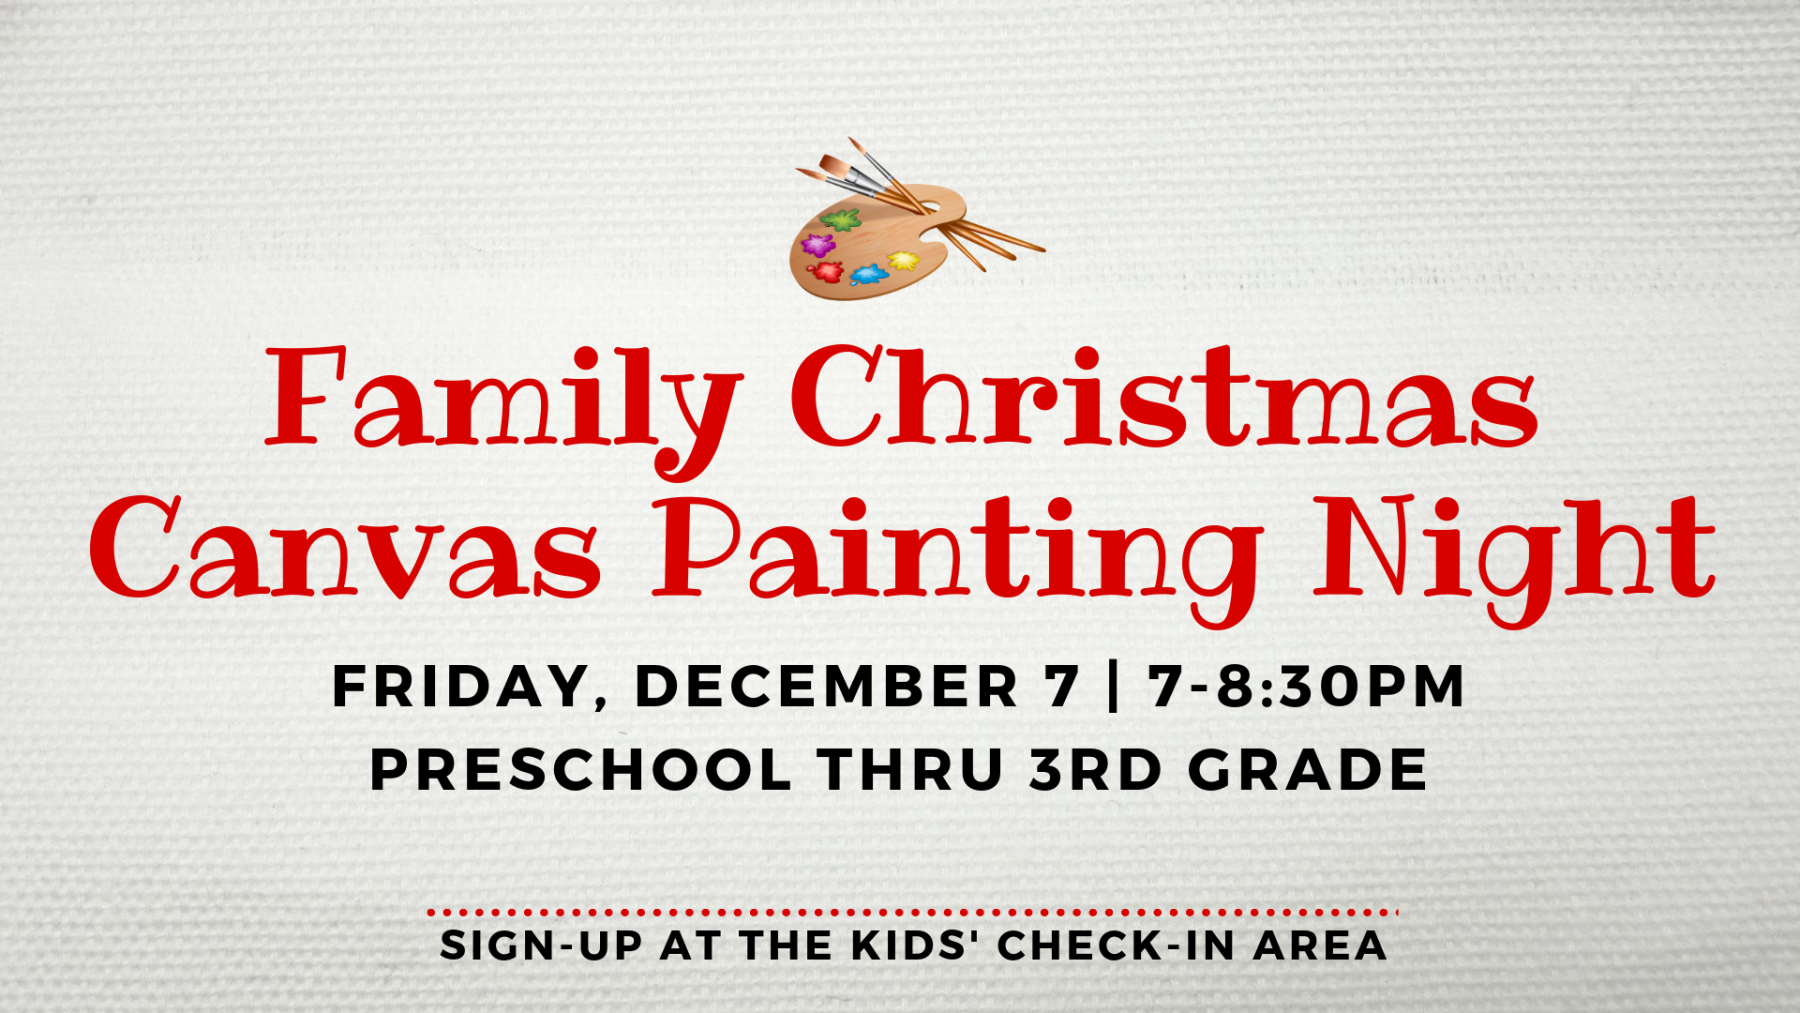 Family Christmas Canvas Painting Night